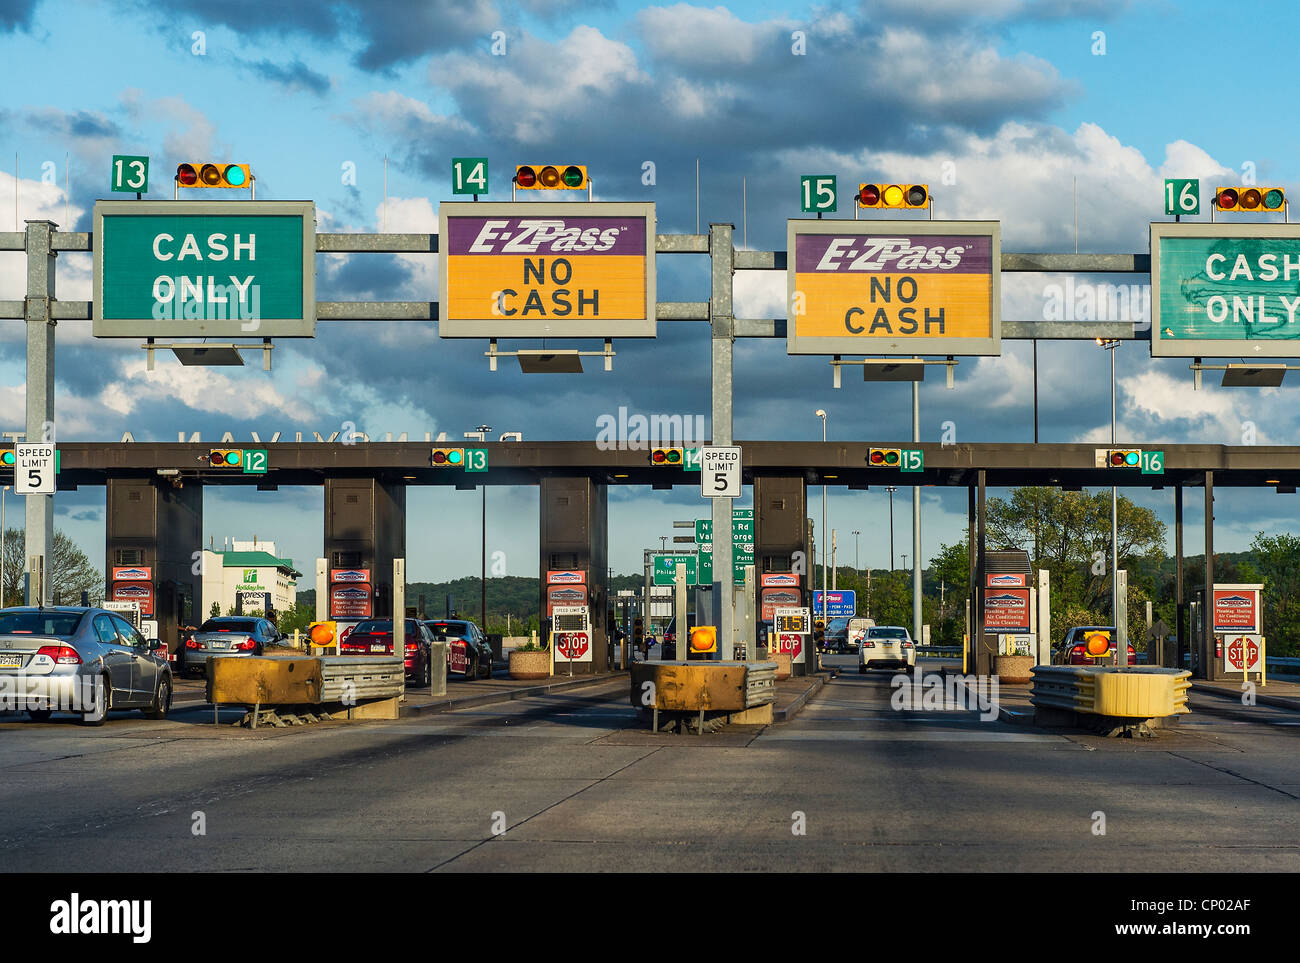 E-ZPass toll booth. - Stock Image